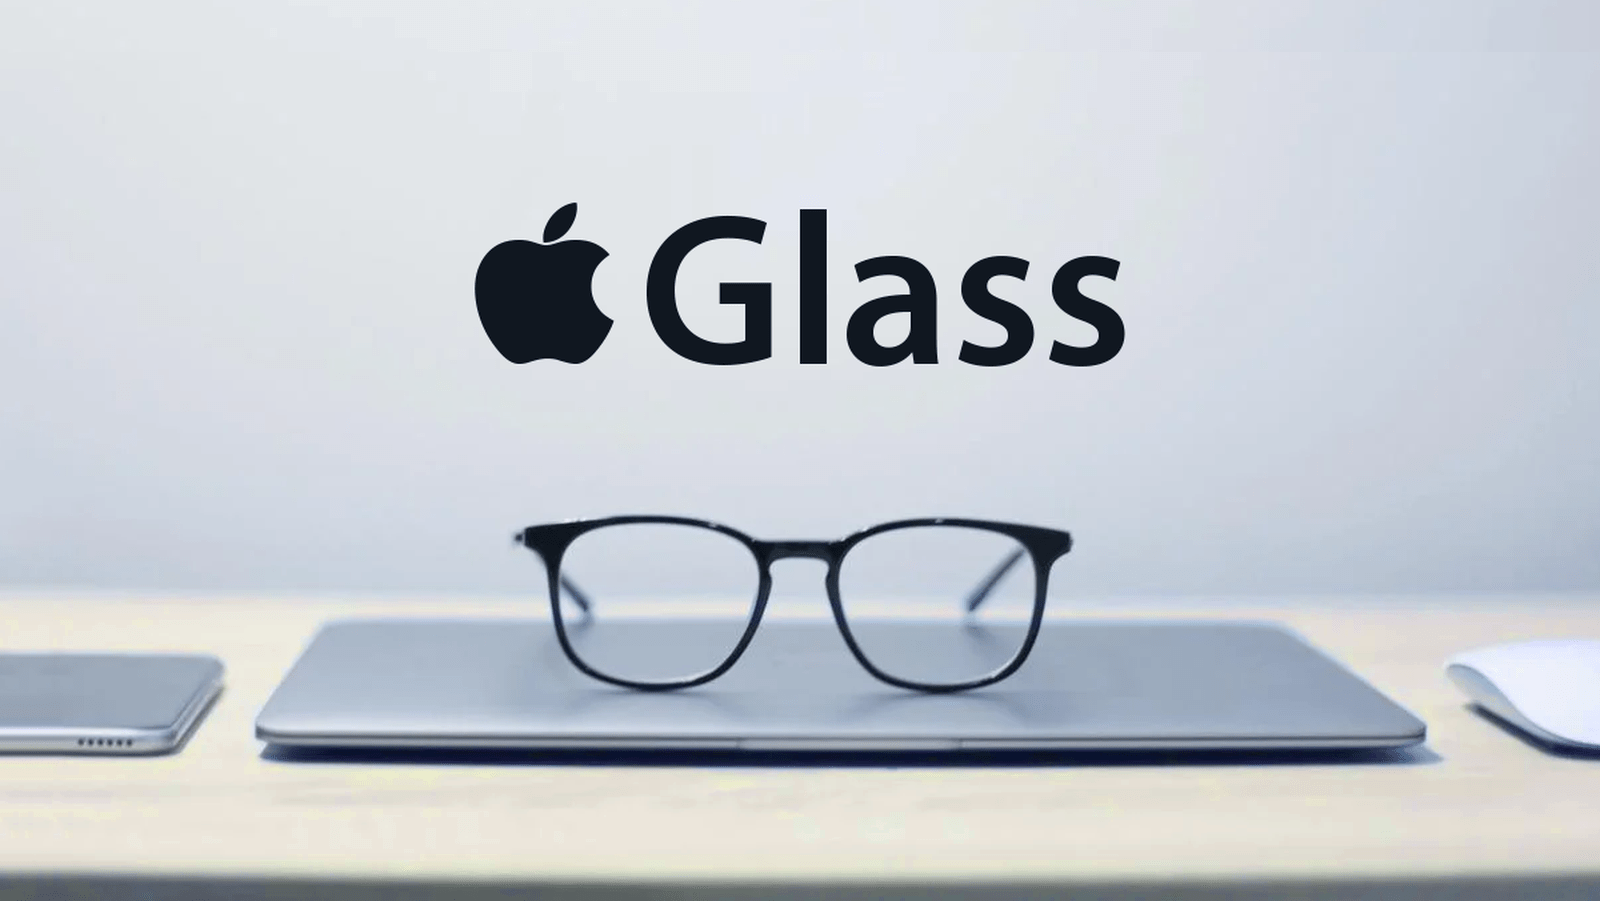 СМИ: Apple приступила к производству линз для Apple Glass